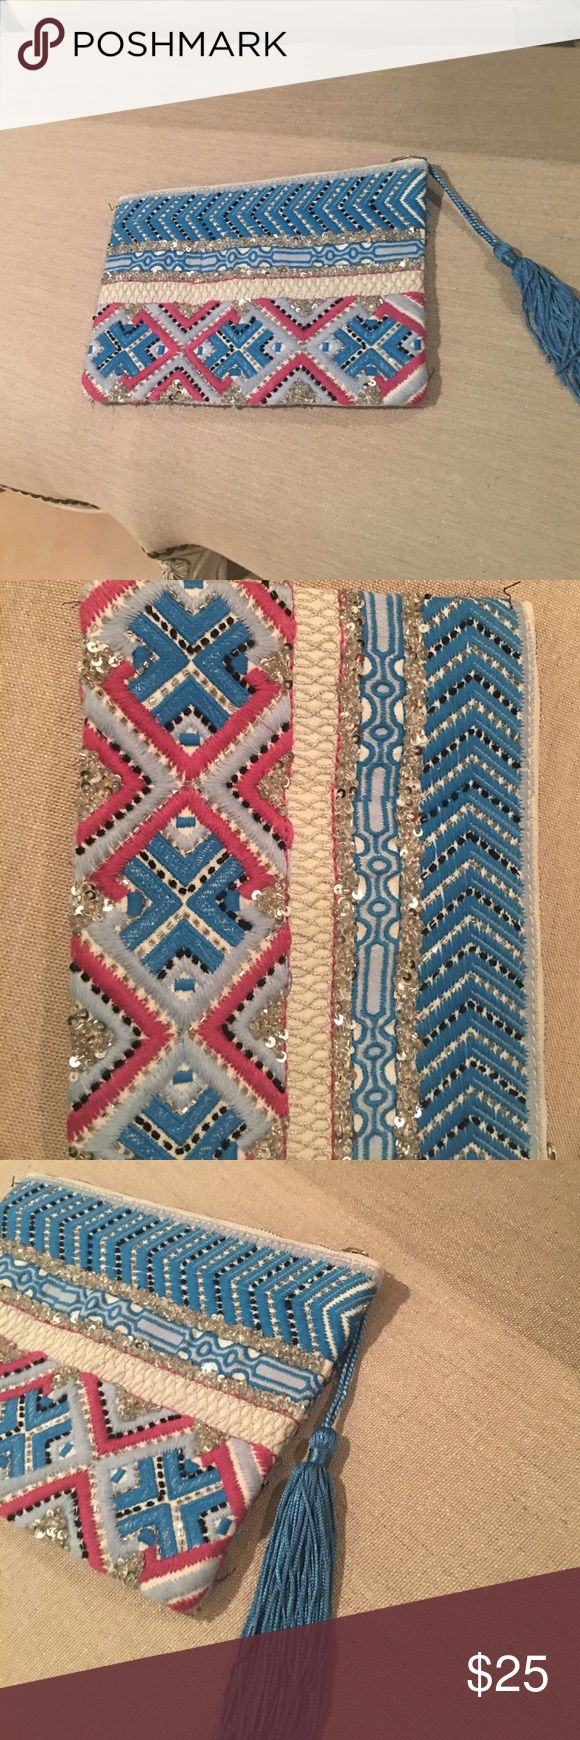 RAJ Beaded Clutch NWOT RAJ Beaded Clutch NWOT RAJ Bags Clutches & Wristlets